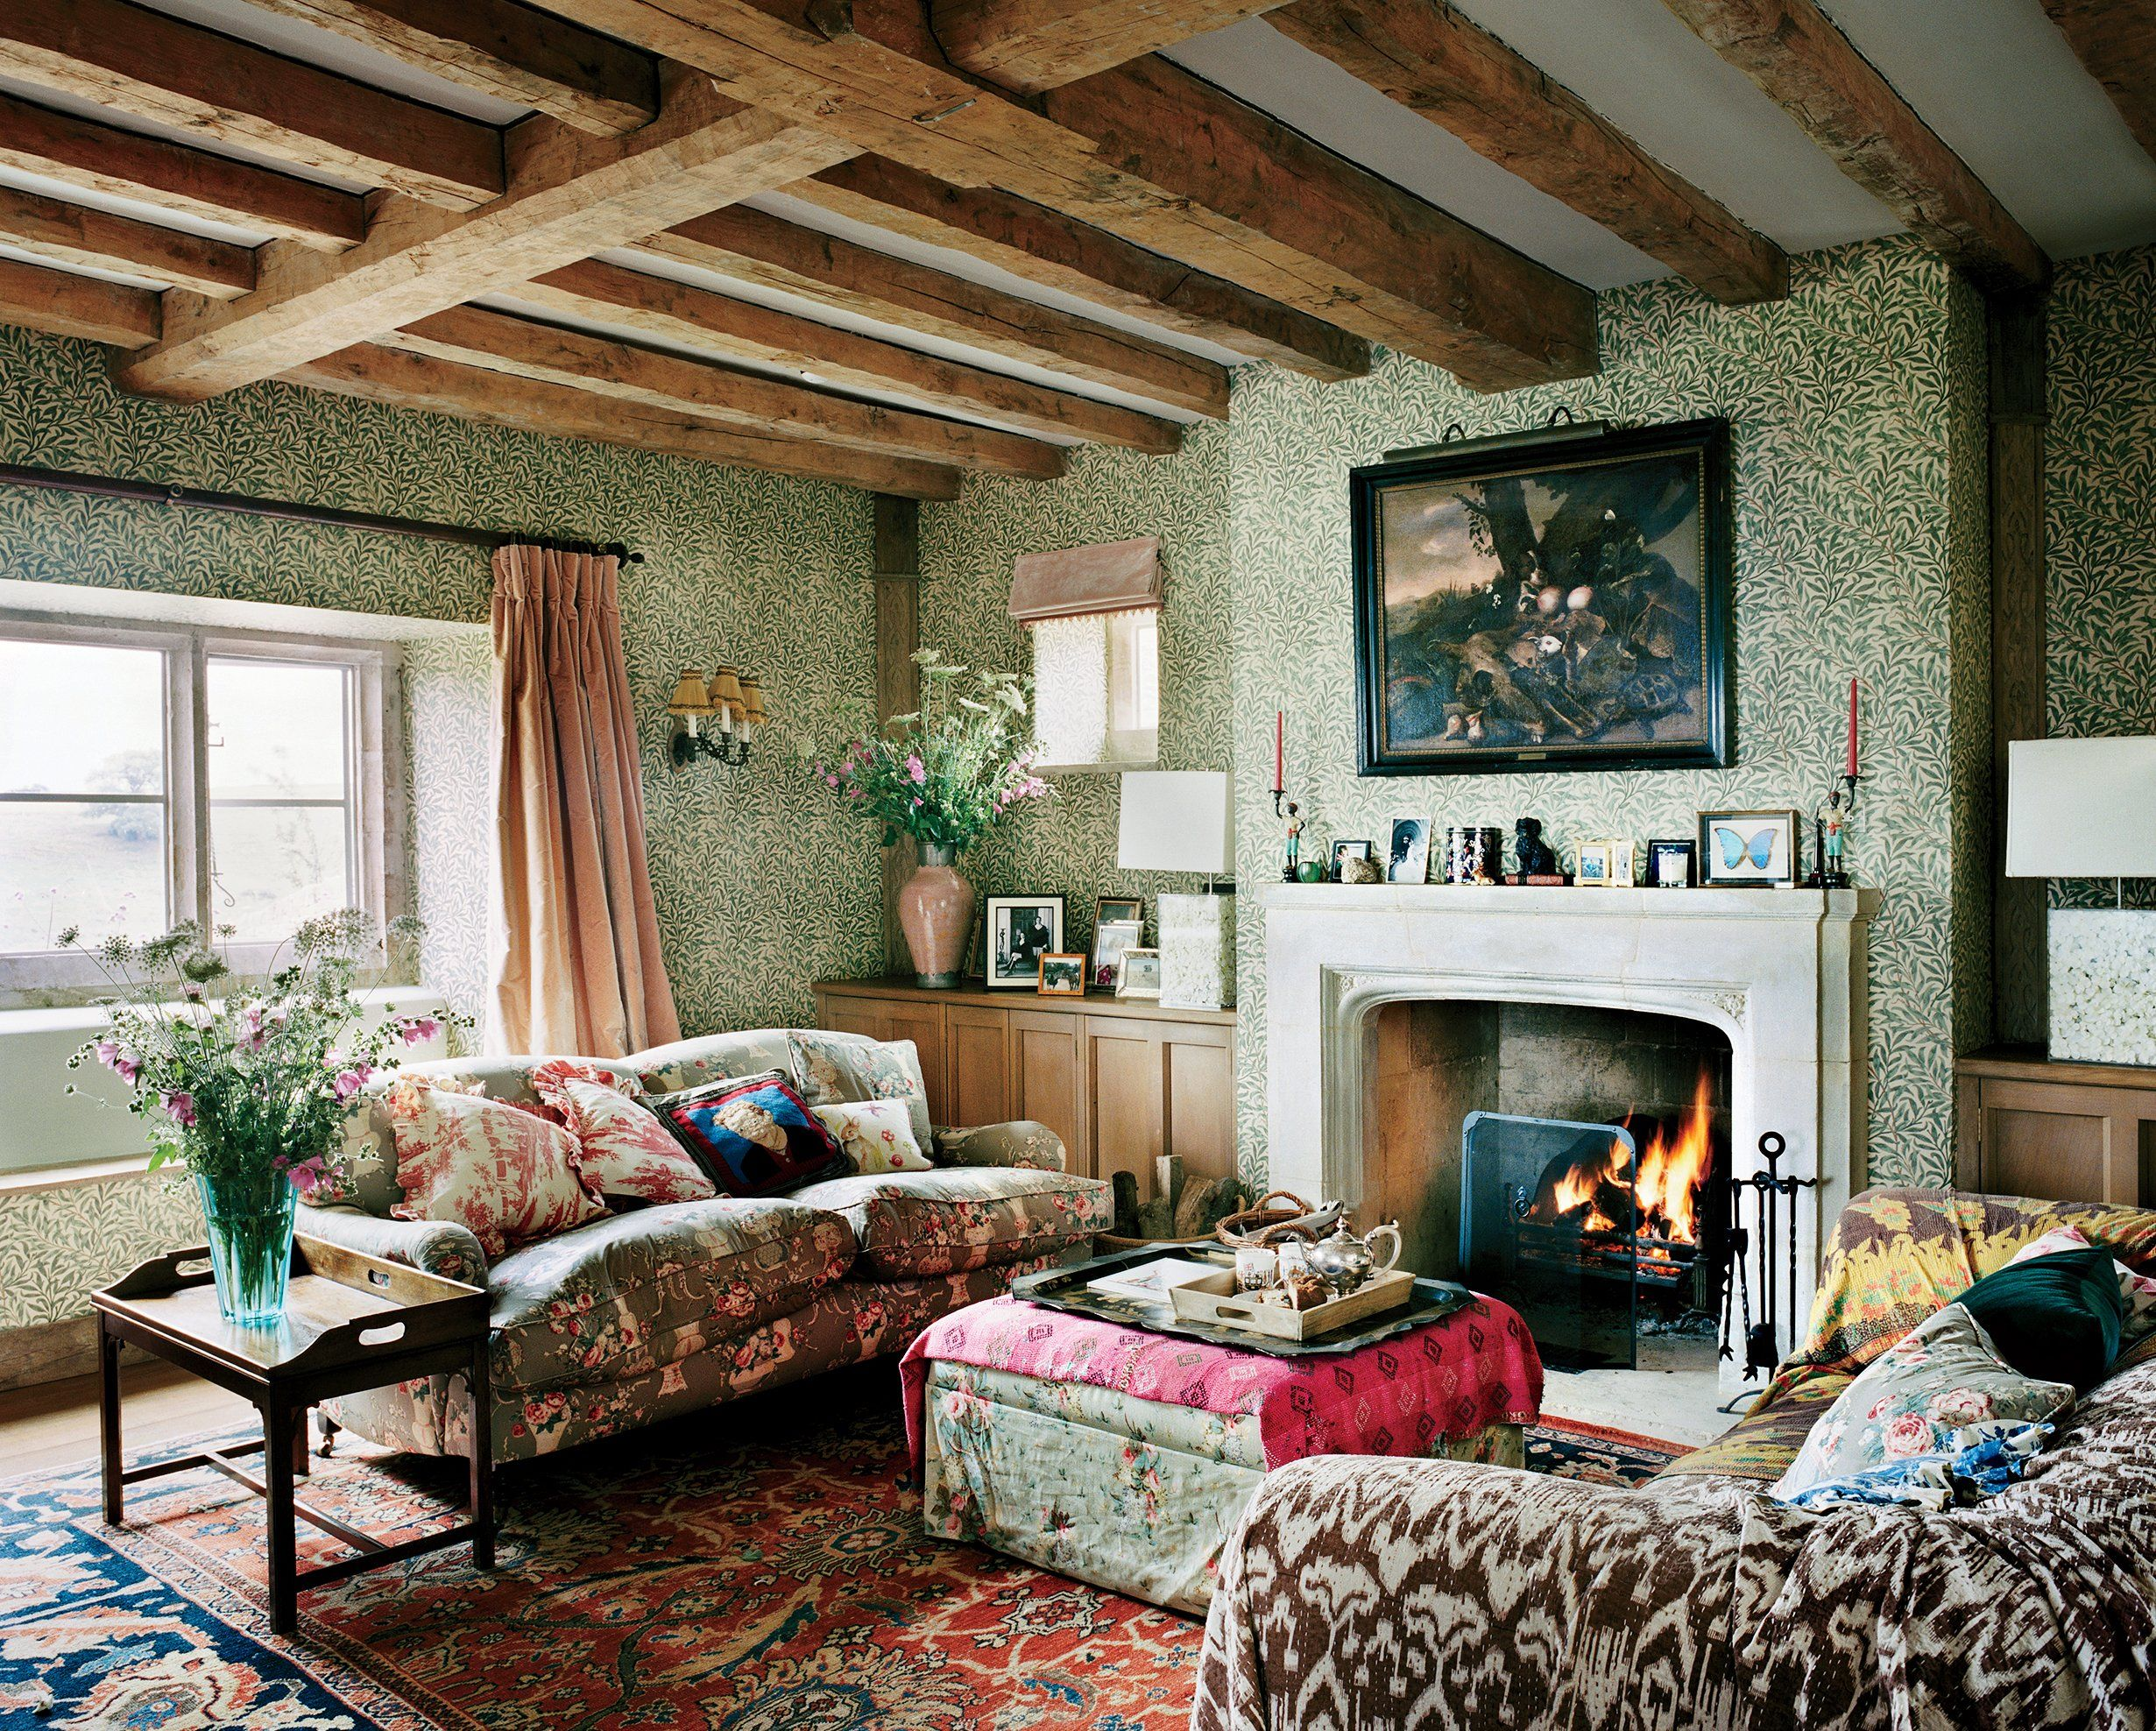 A Look Inside Plum Sykesus Dream House in the English Countryside